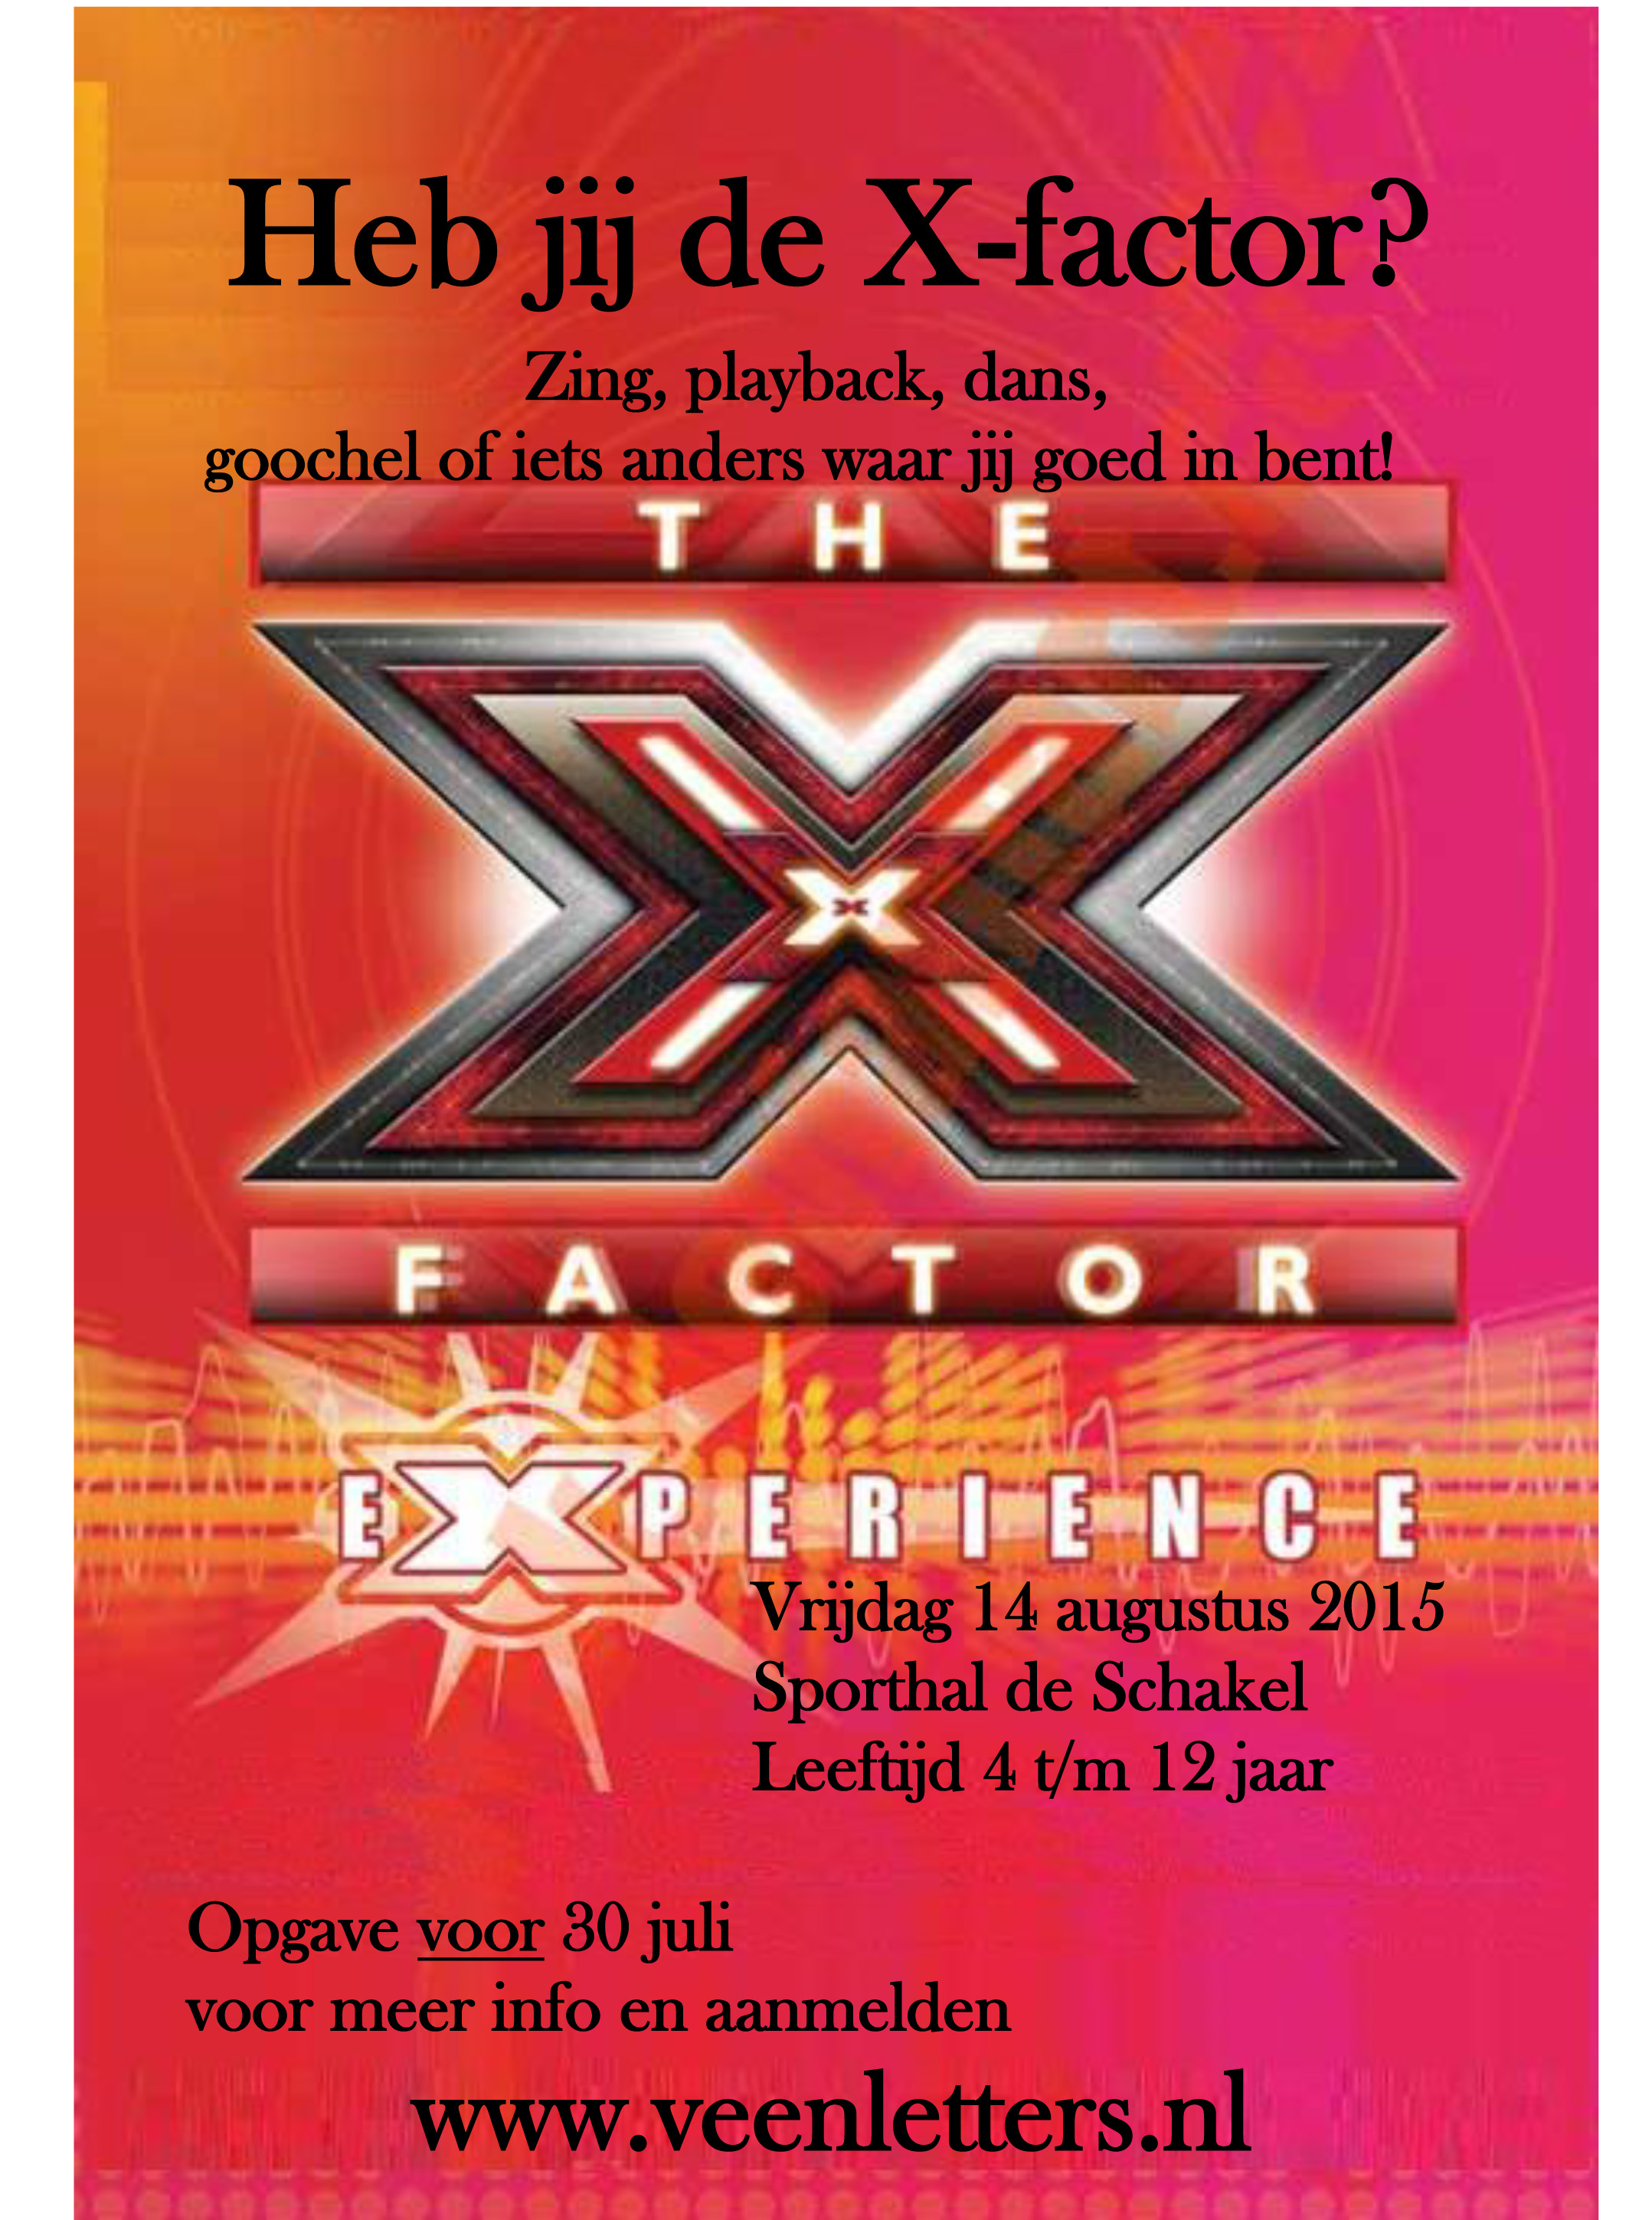 Poster Polderfeest X-factor